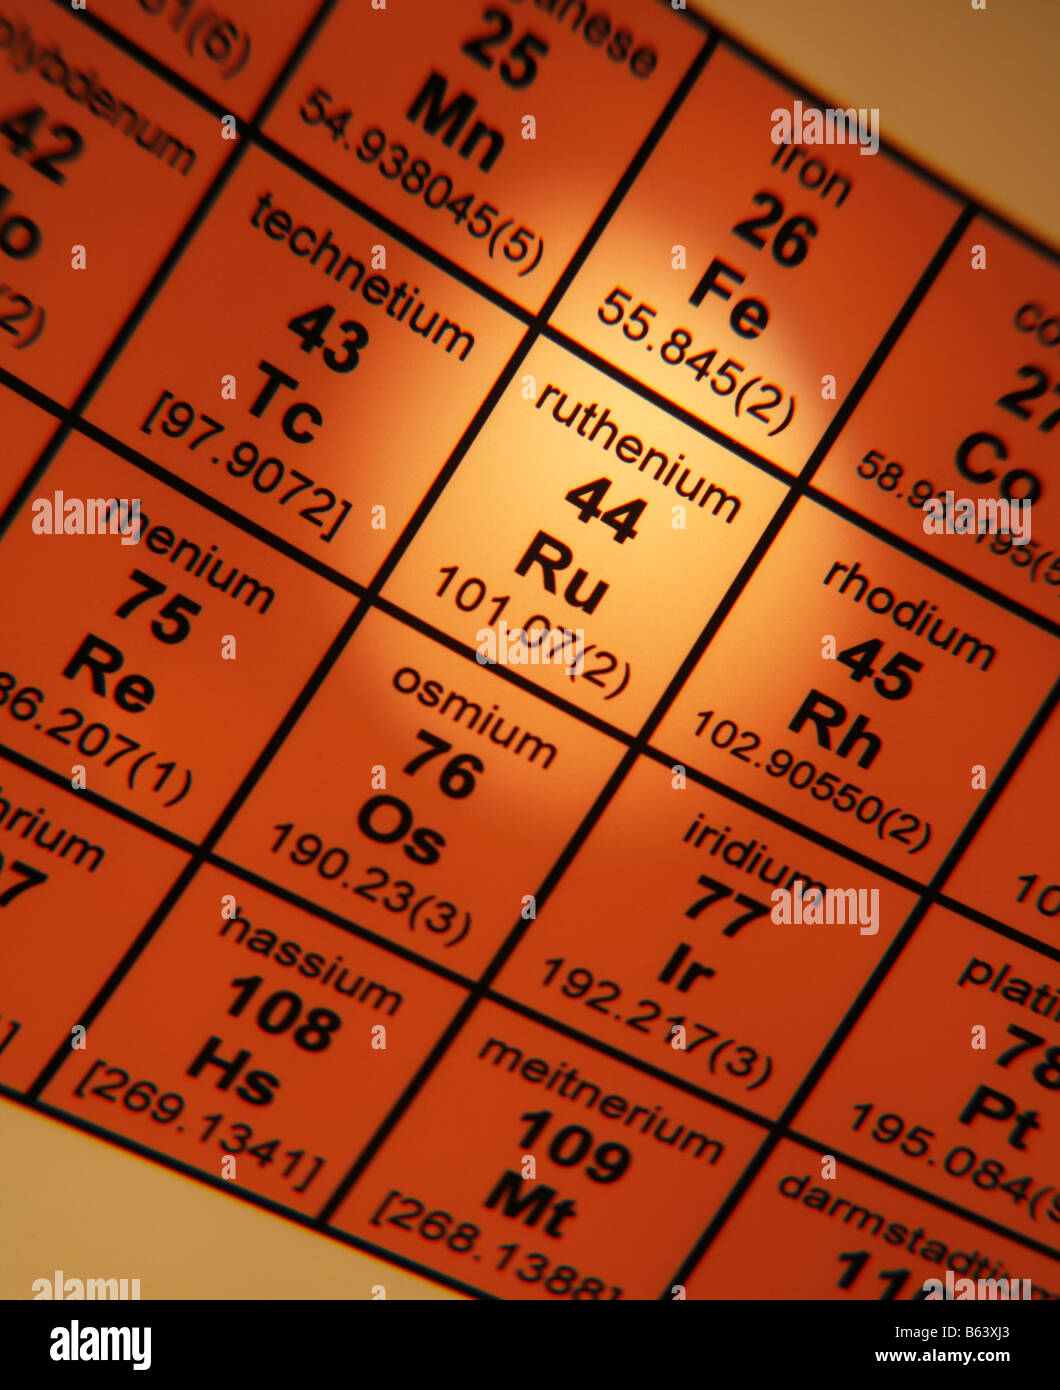 Periodic table of elements ruthenium stock photo royalty free periodic table of elements ruthenium gamestrikefo Choice Image